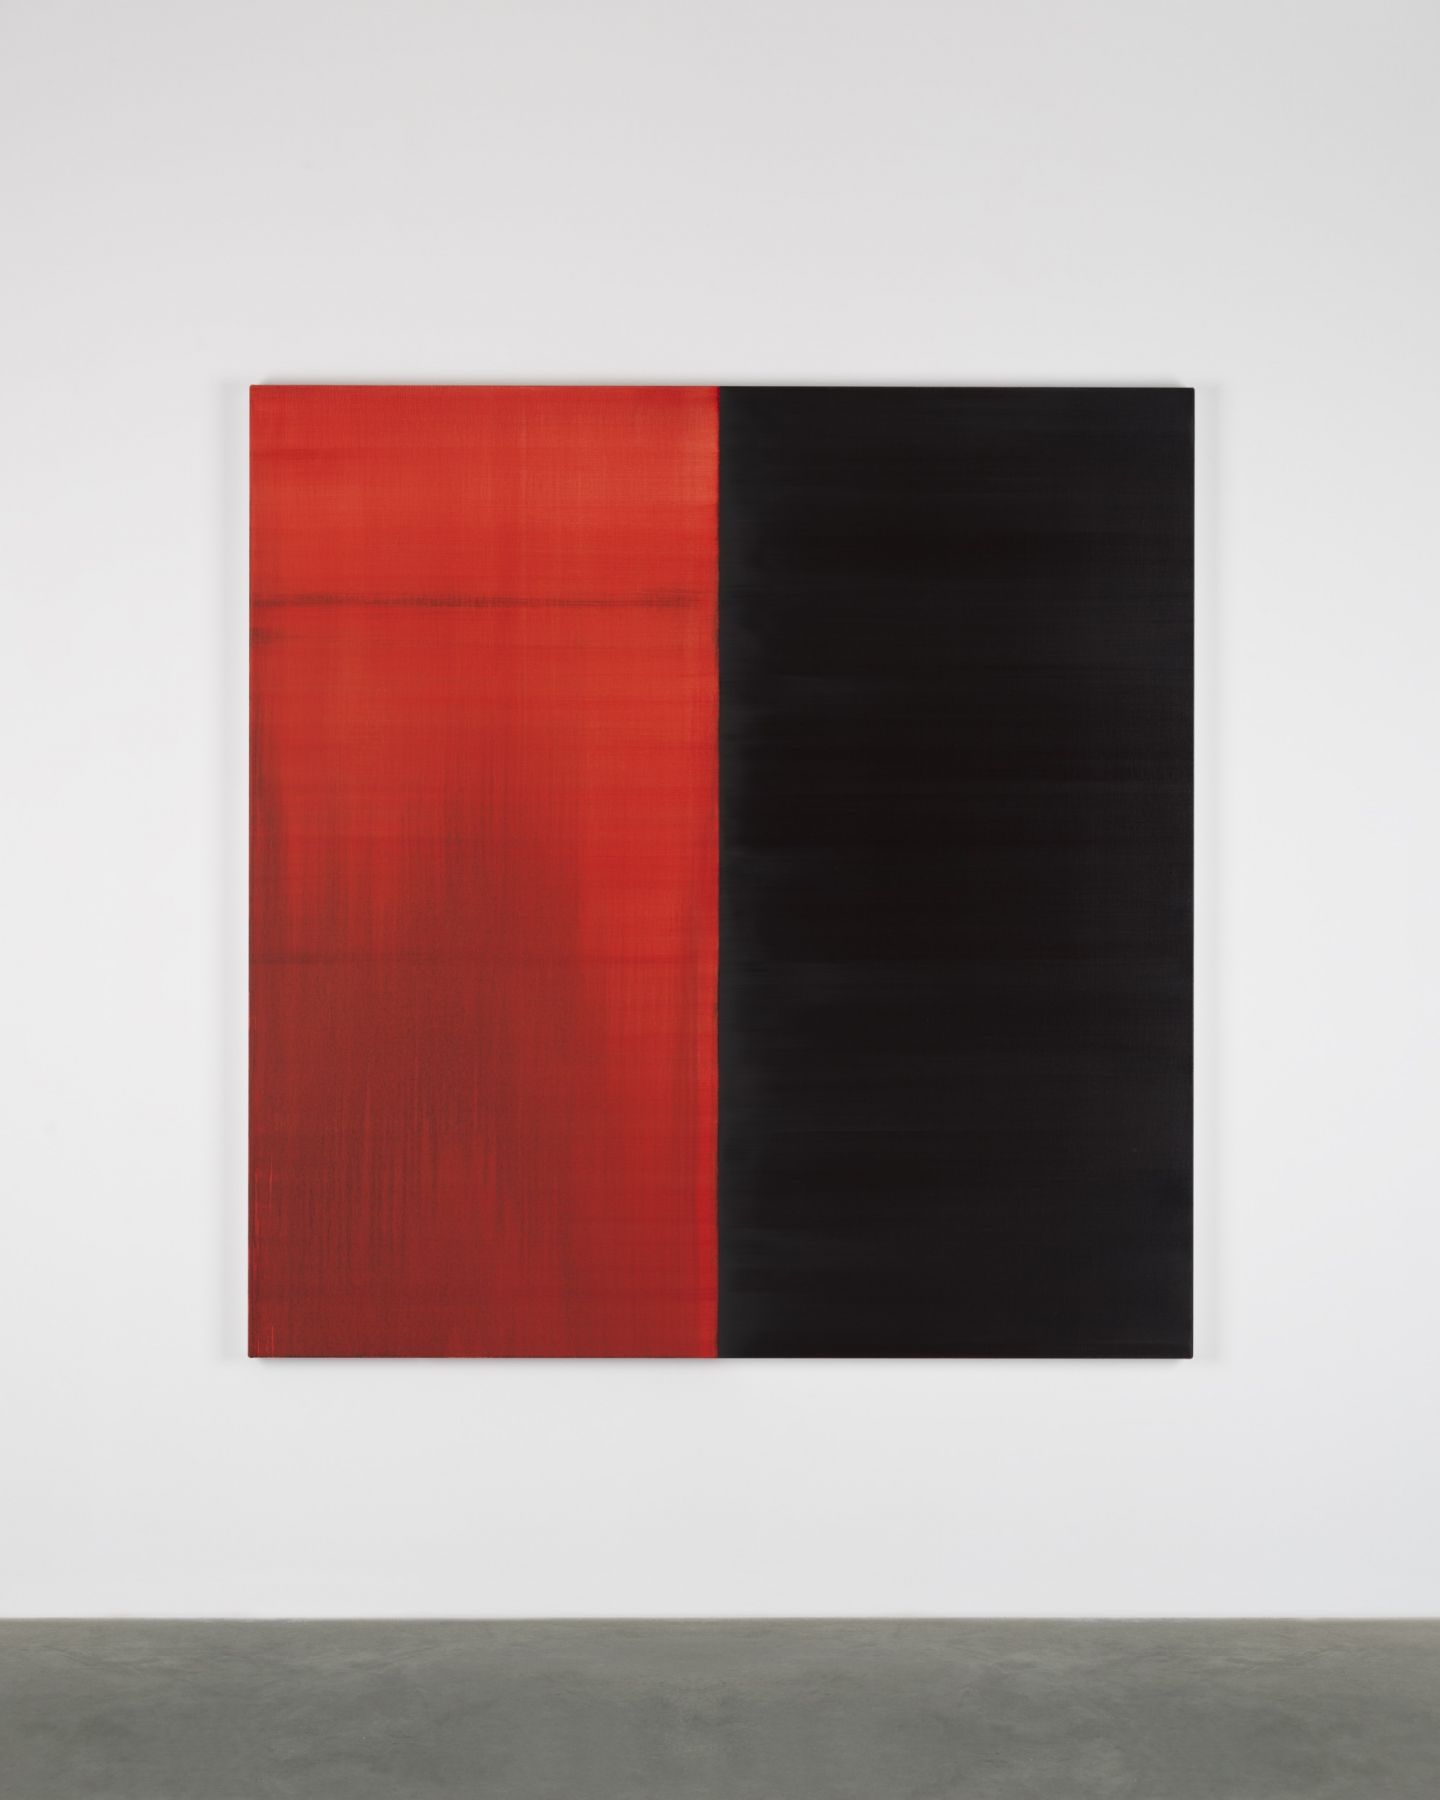 CALLUM INNES, Untitled Lamp Black / Crimson Lake No. 27, 2018